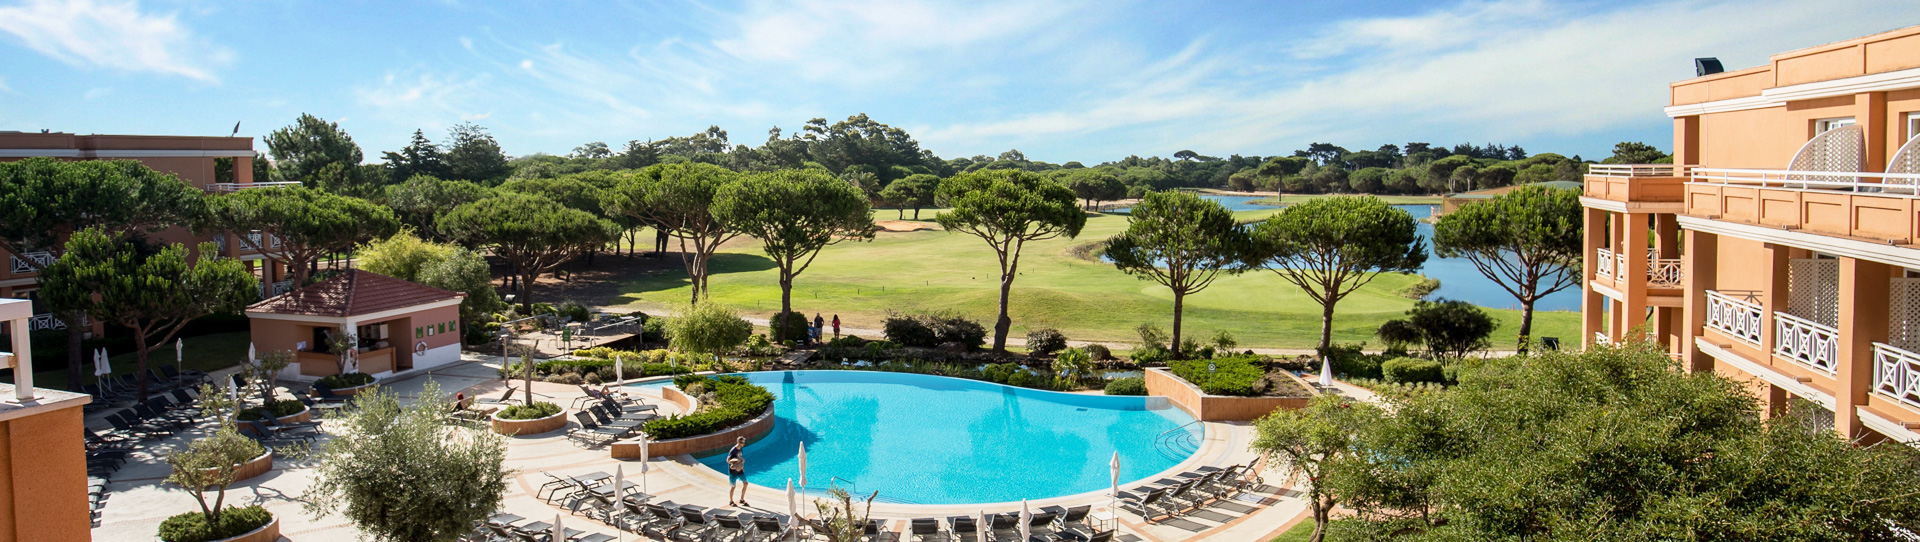 Onyria Quinta da Marinha Hotel Resort - Photo 1